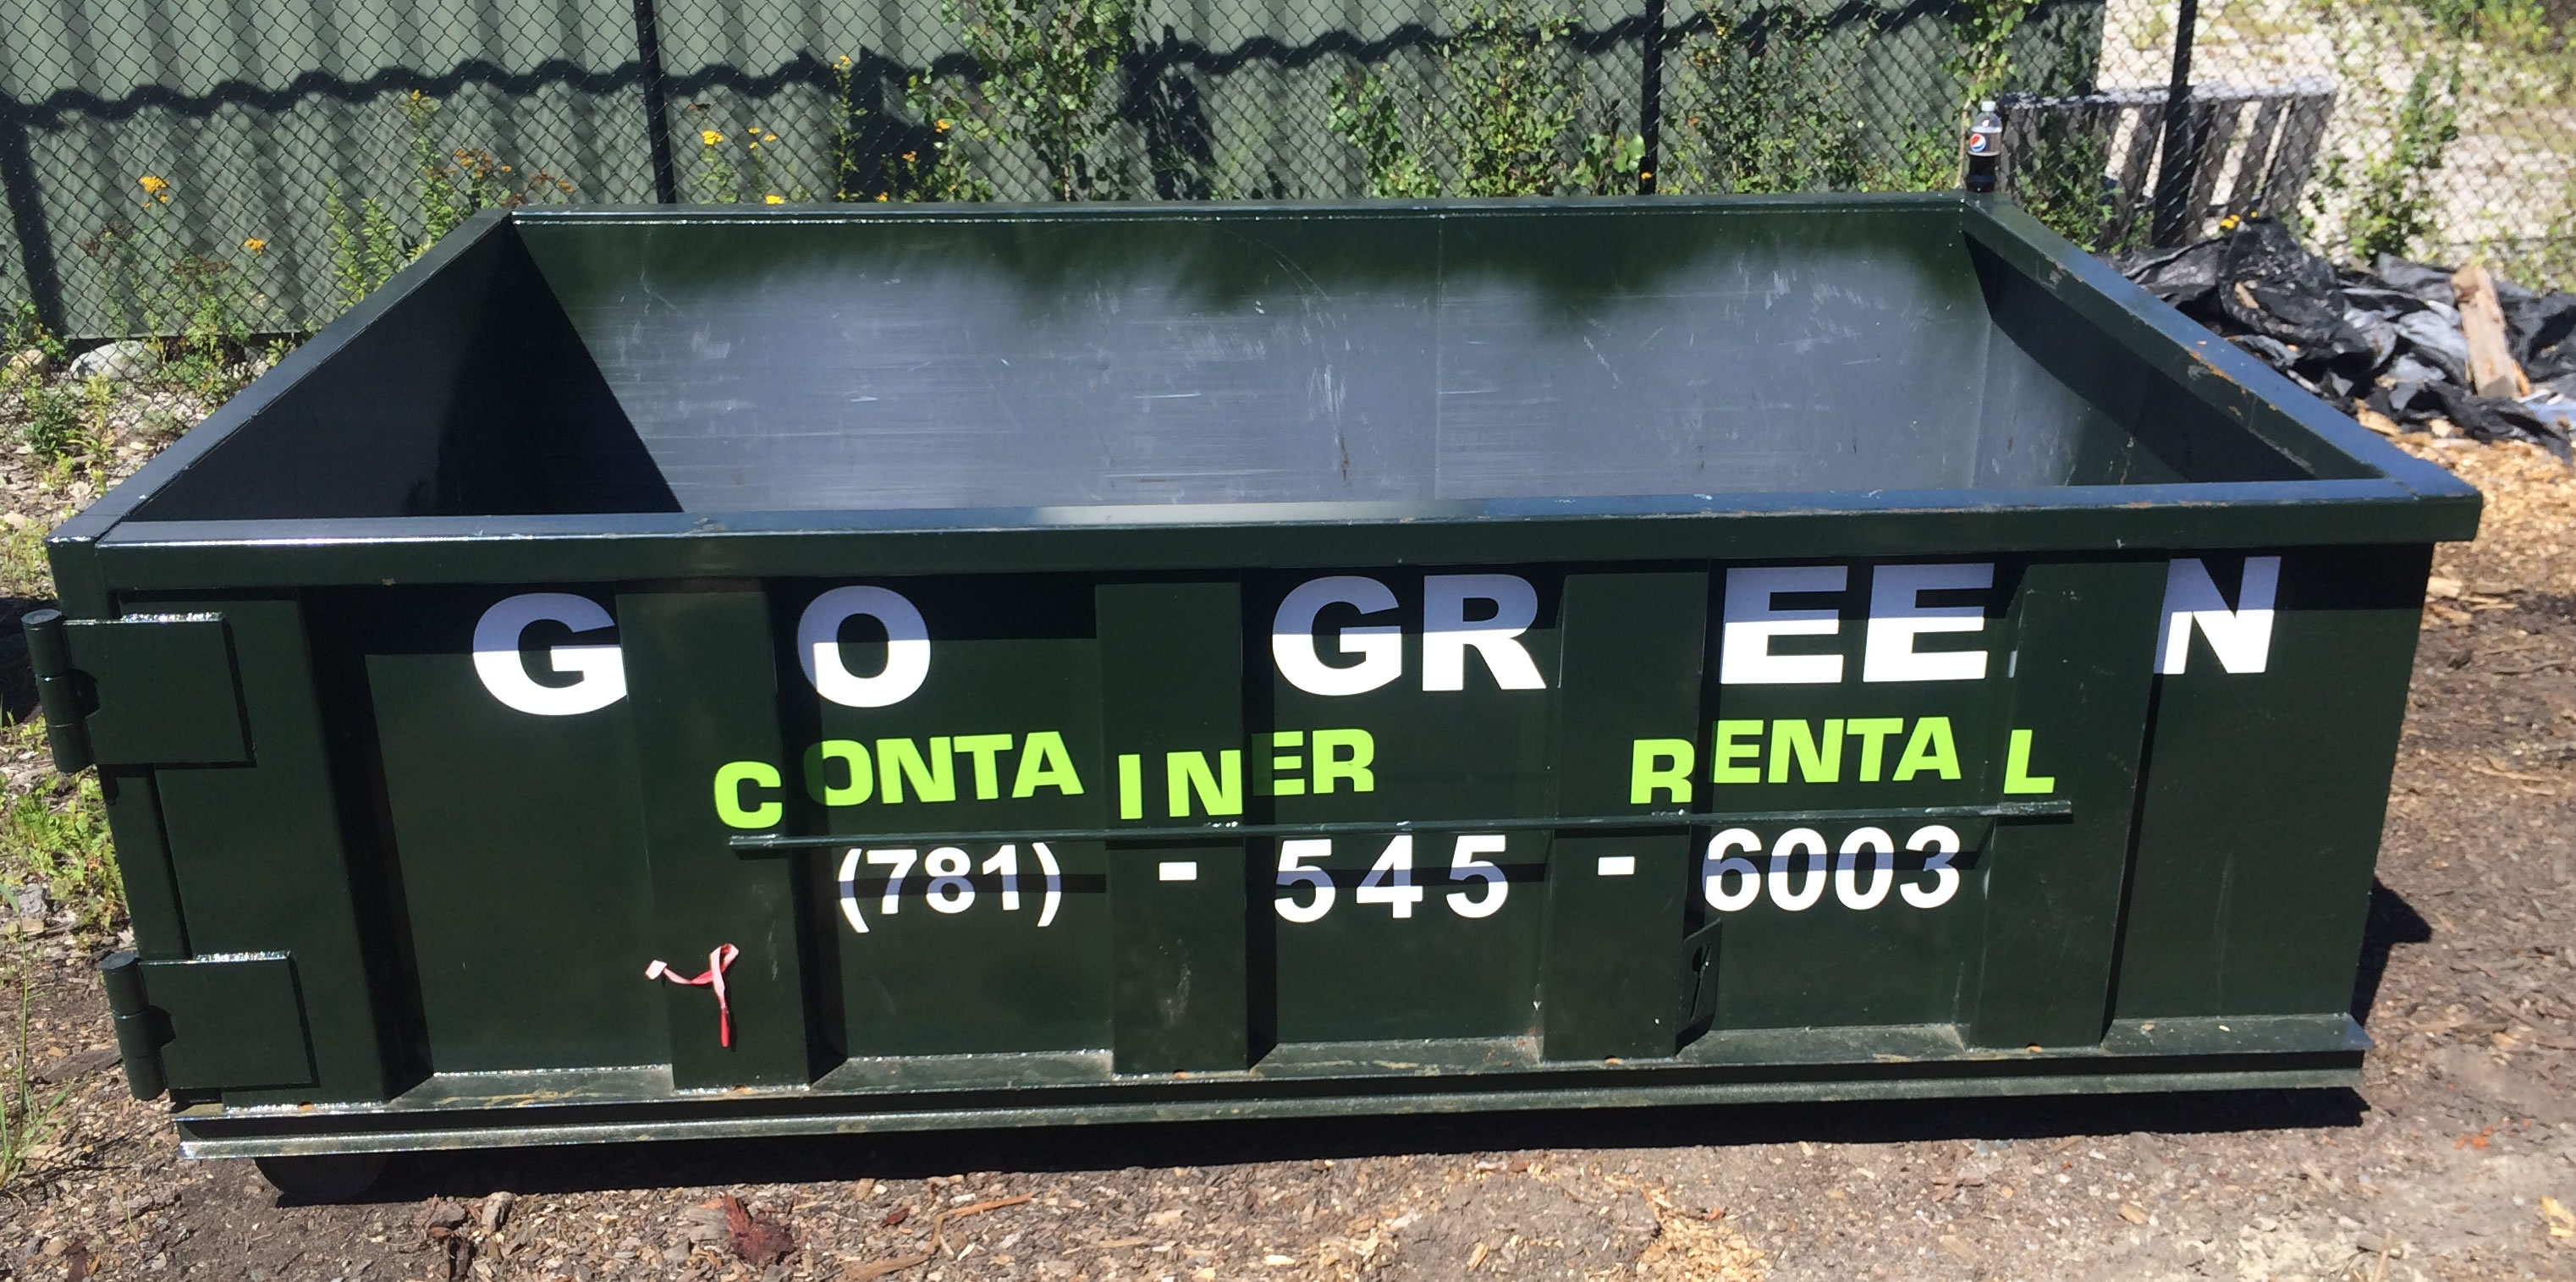 GOGREEN-DUMPSTER-RENTAL-CAPECOD-SOUTH SHORE-MASSACHUSETTS - FREE DELIVERY